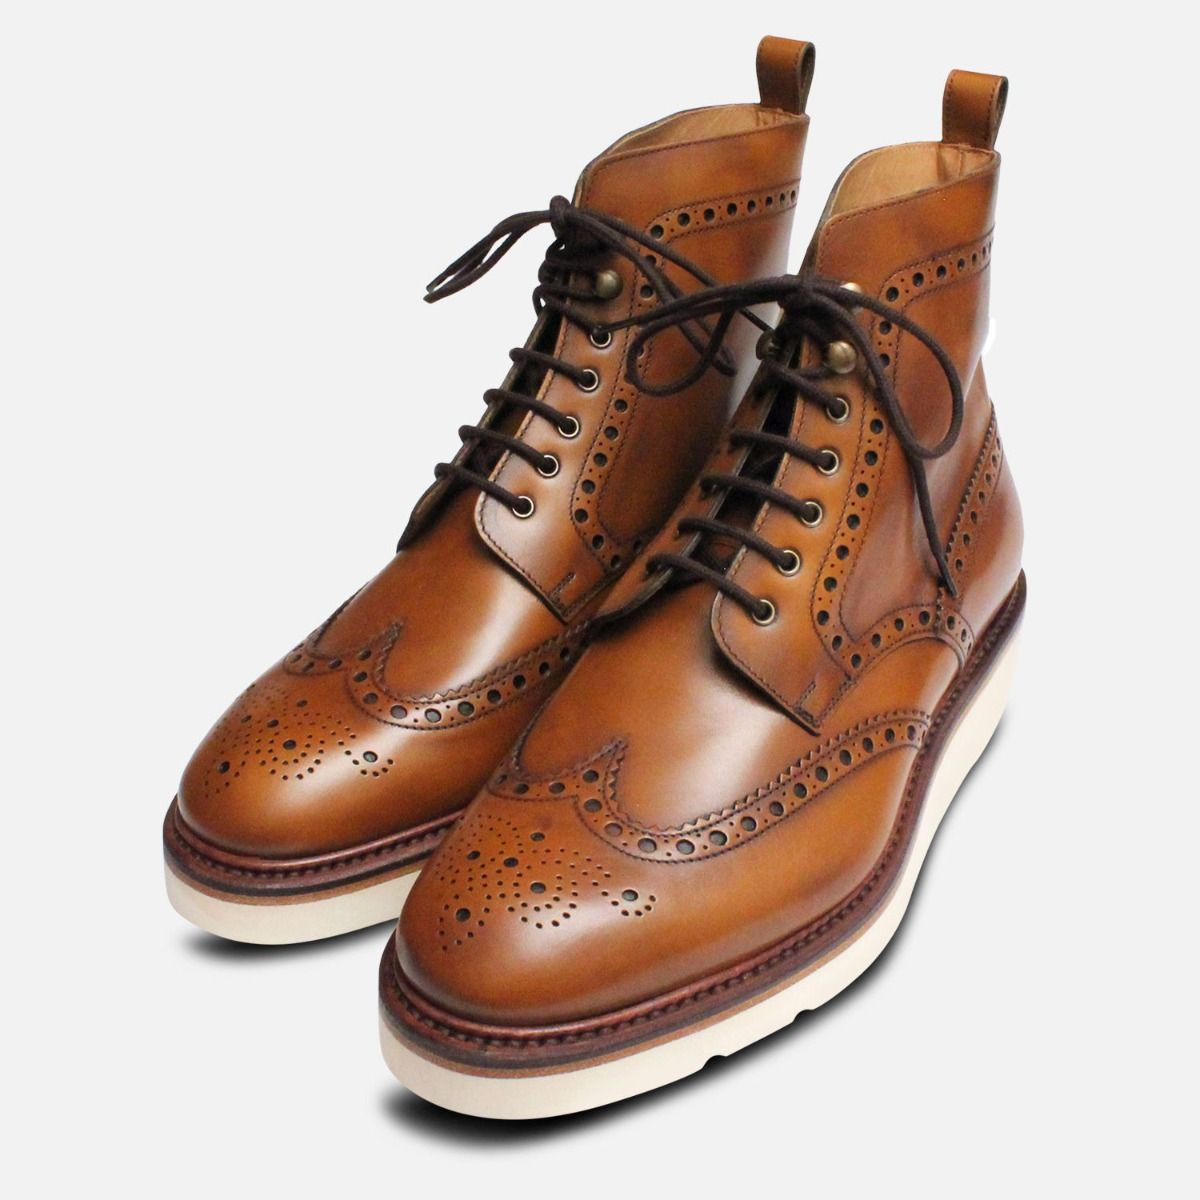 more photos outlet store cheaper sale Designer Italian Brogue Boots Goodyear Vibram Sole